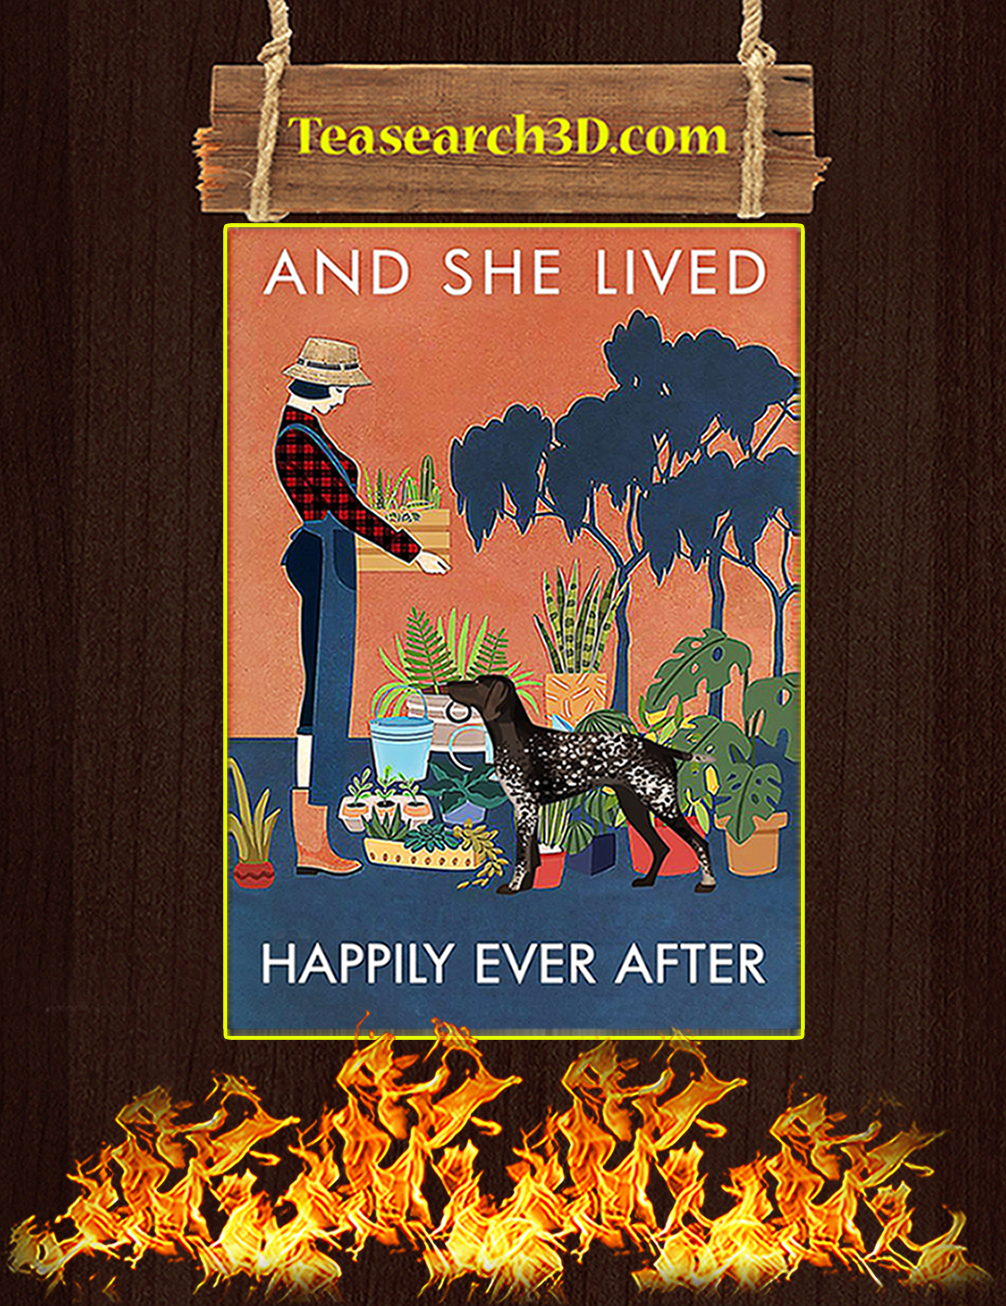 German Shorthaired Pointer And she lived happily ever after poster